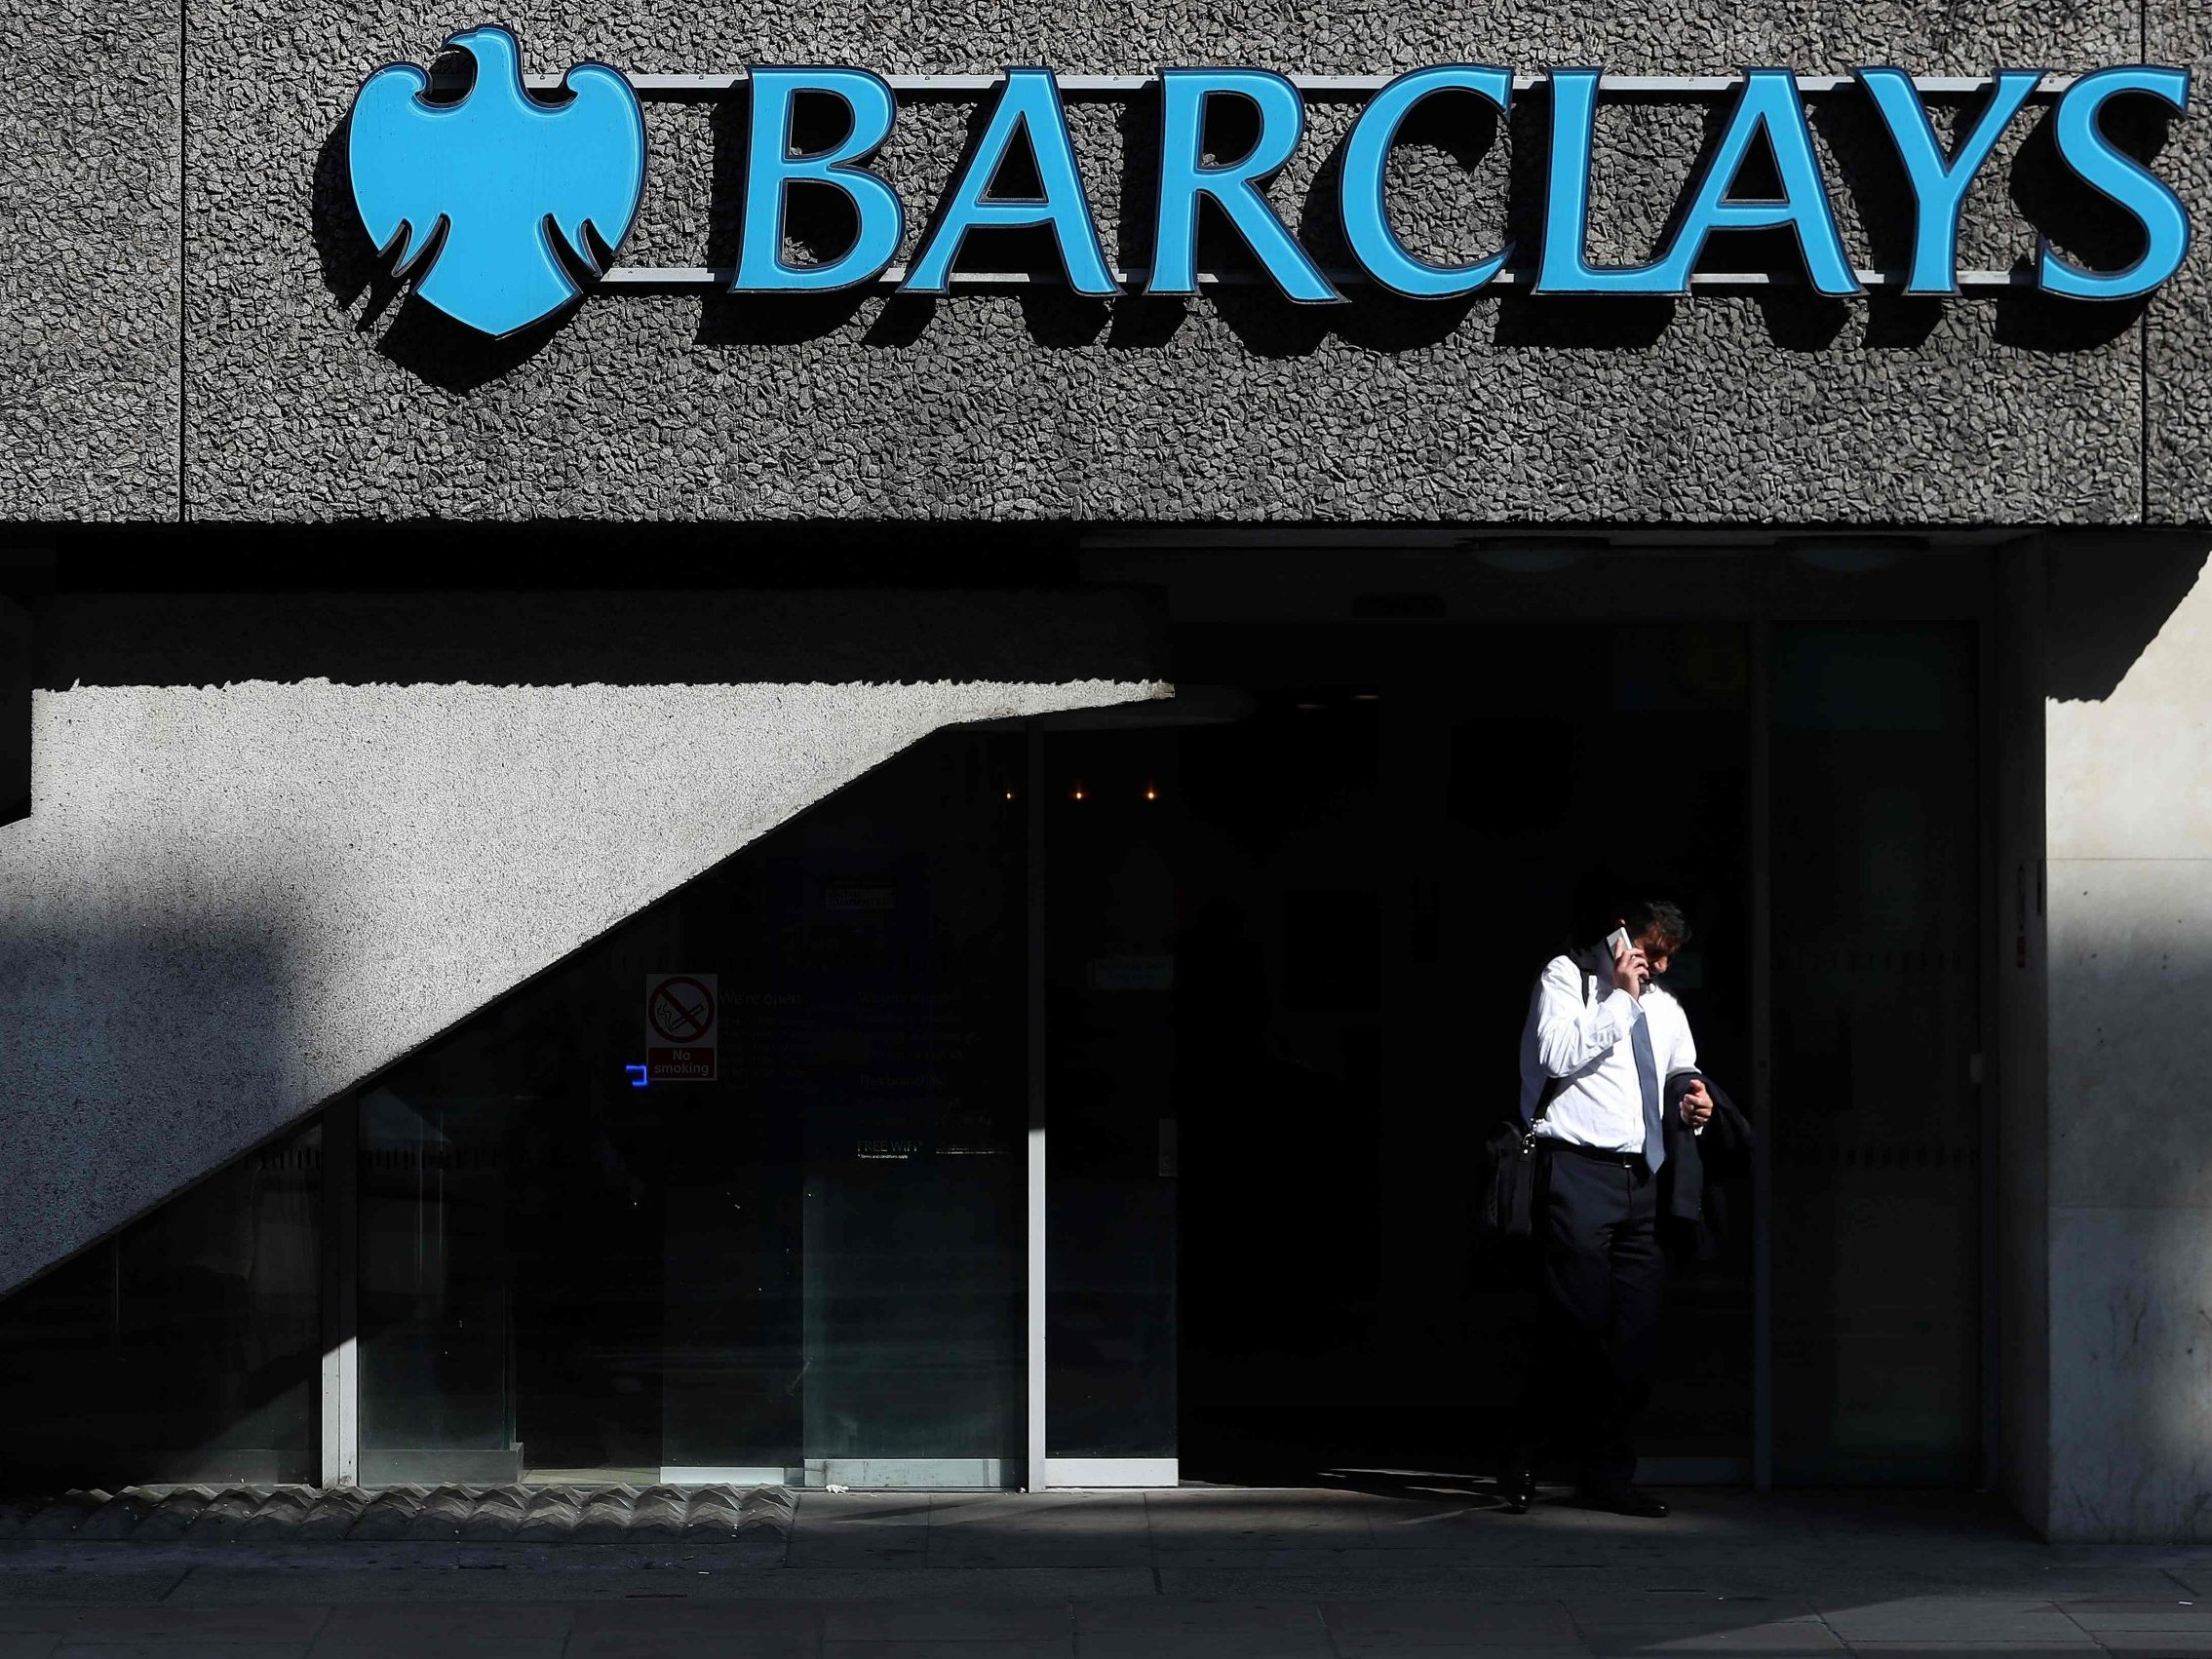 Barclays customers still complaining of online banking